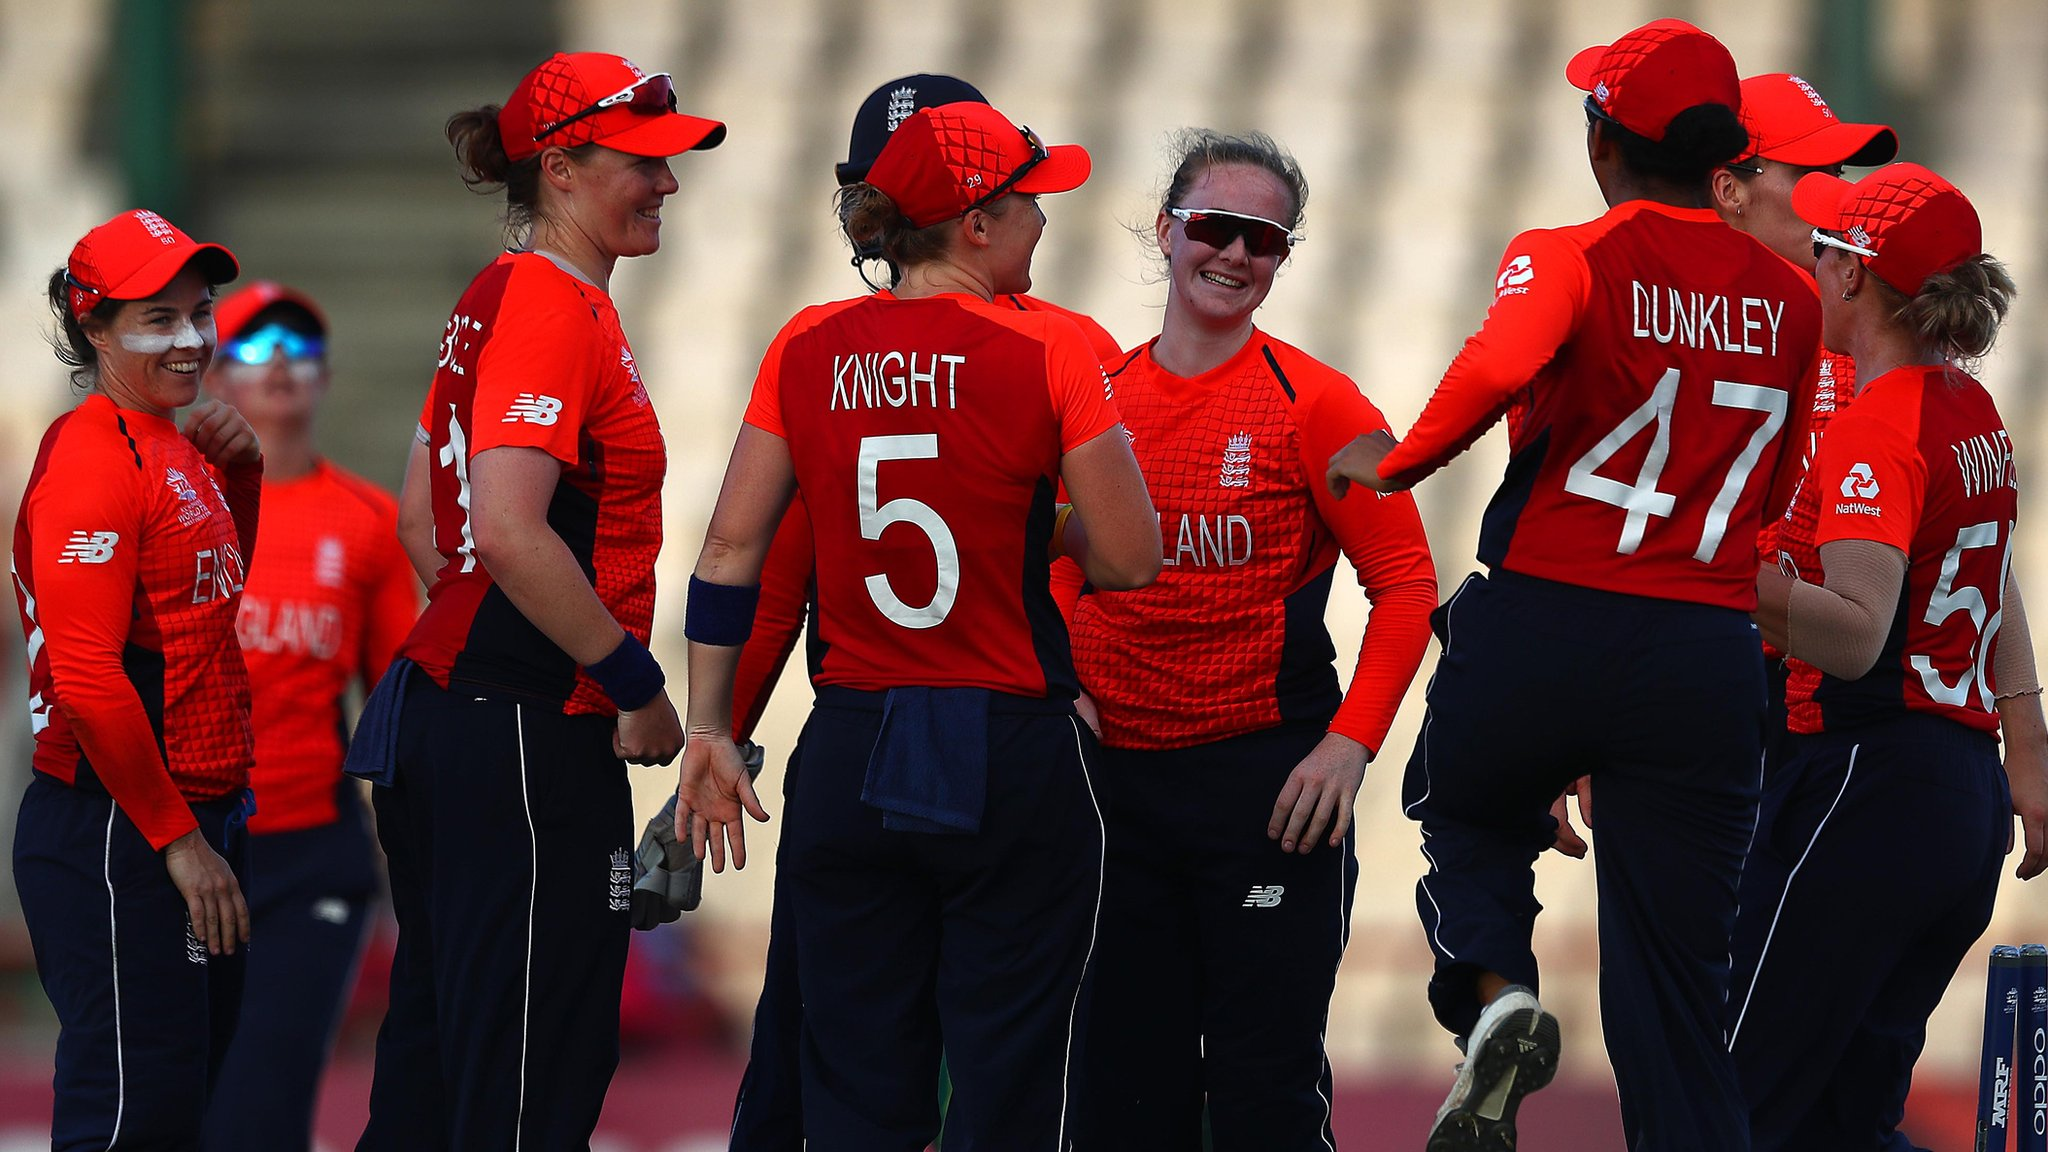 Shrubsole's hat-trick takes dominant England into World T20 semis